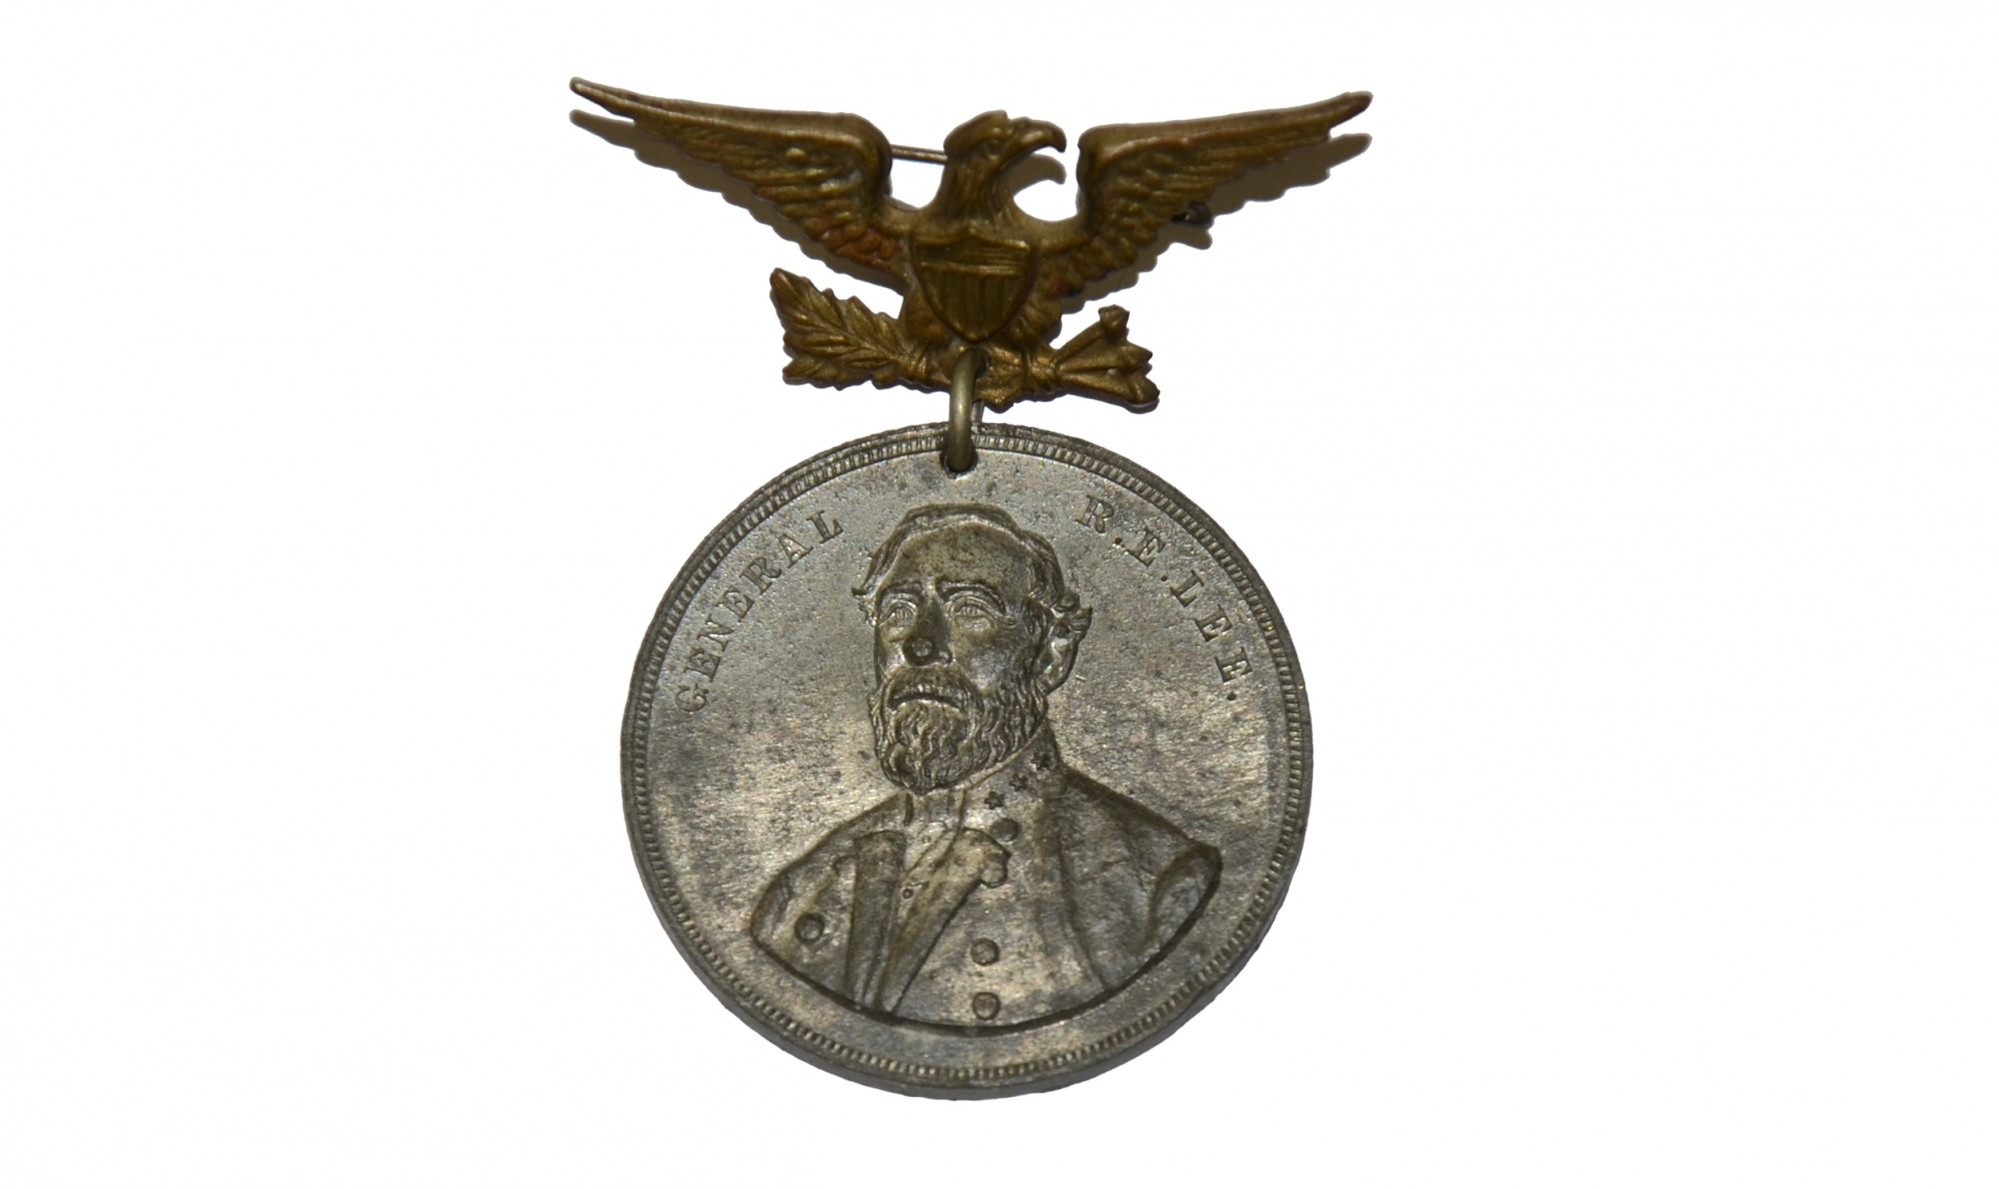 1887 BADGE FOR GENERAL LEE'S RICHMOND MONUMENT